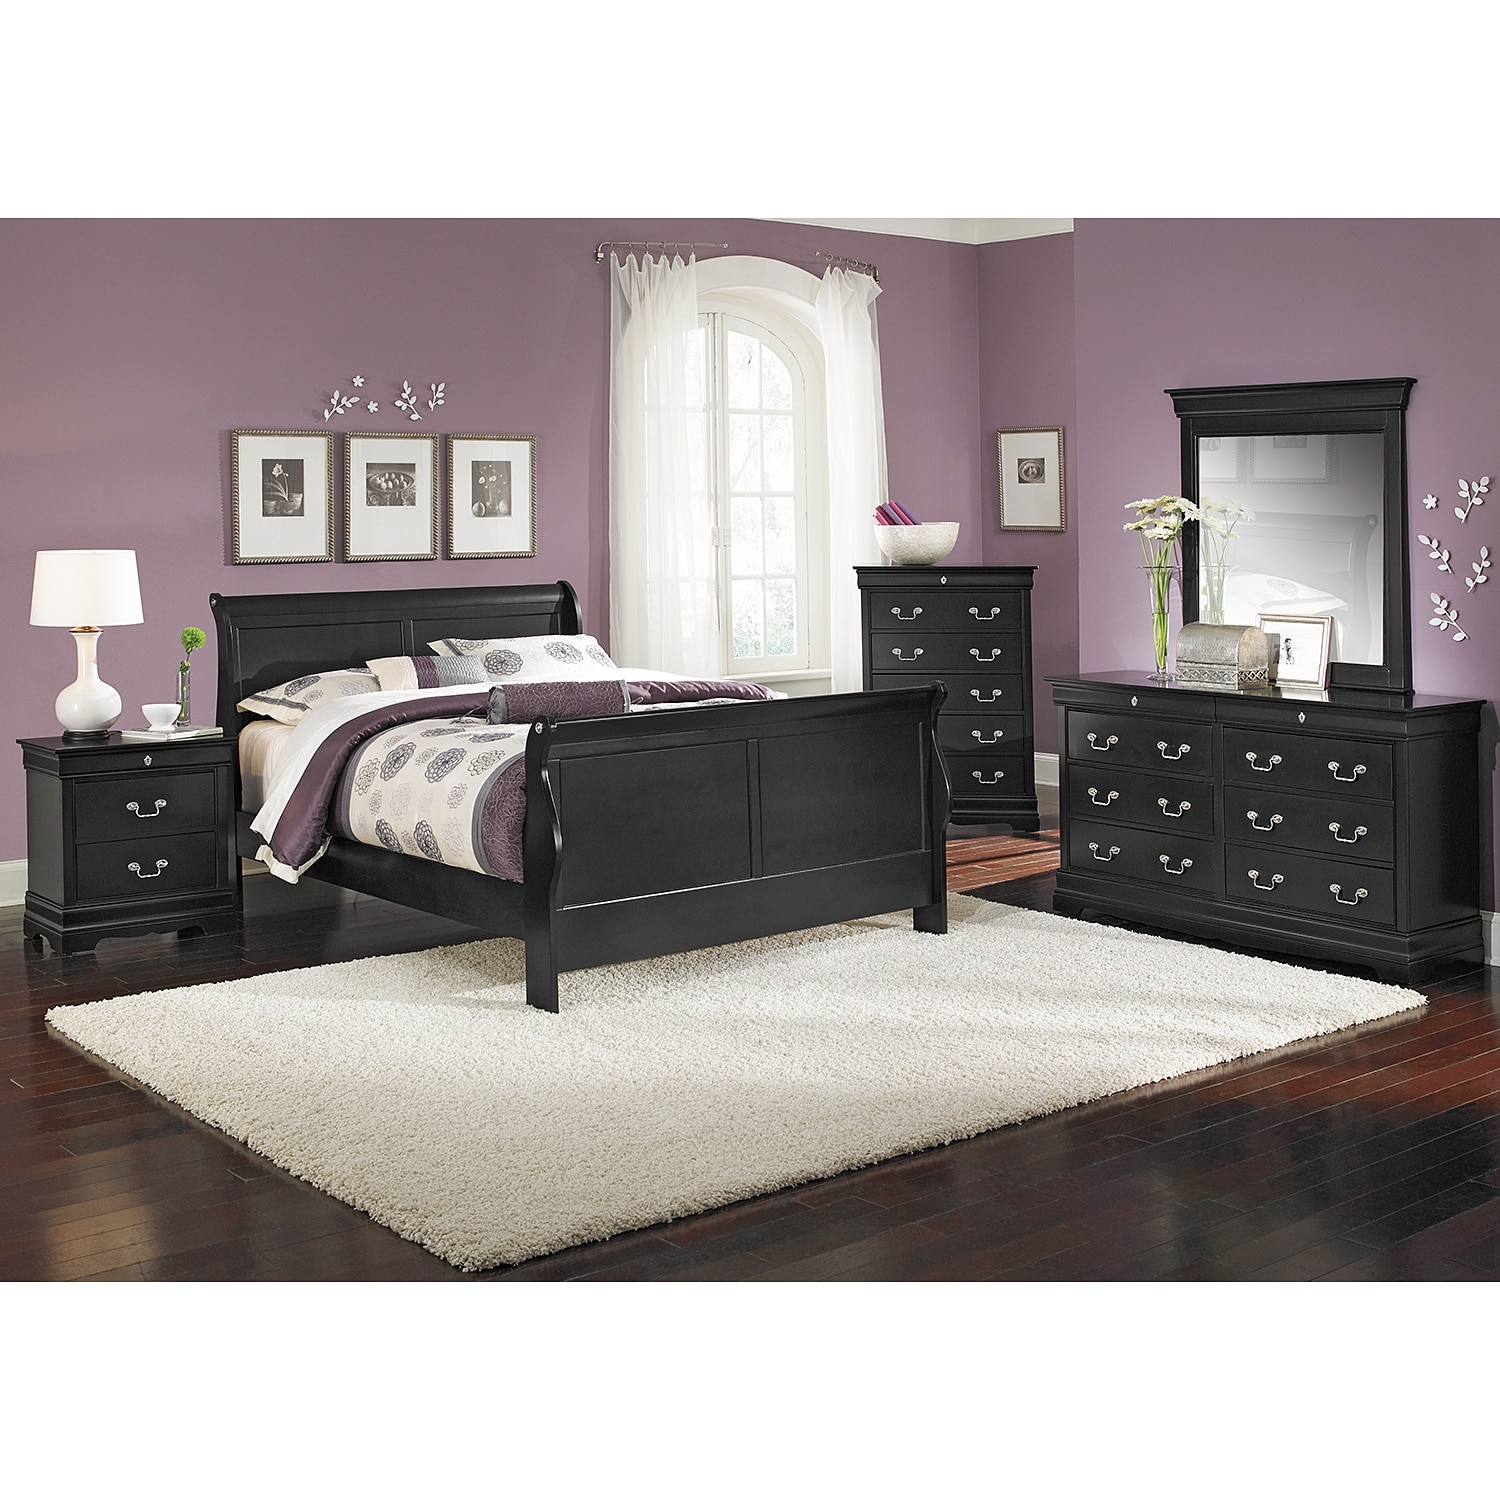 Neo Classic 7-Piece King Bedroom Set - Black